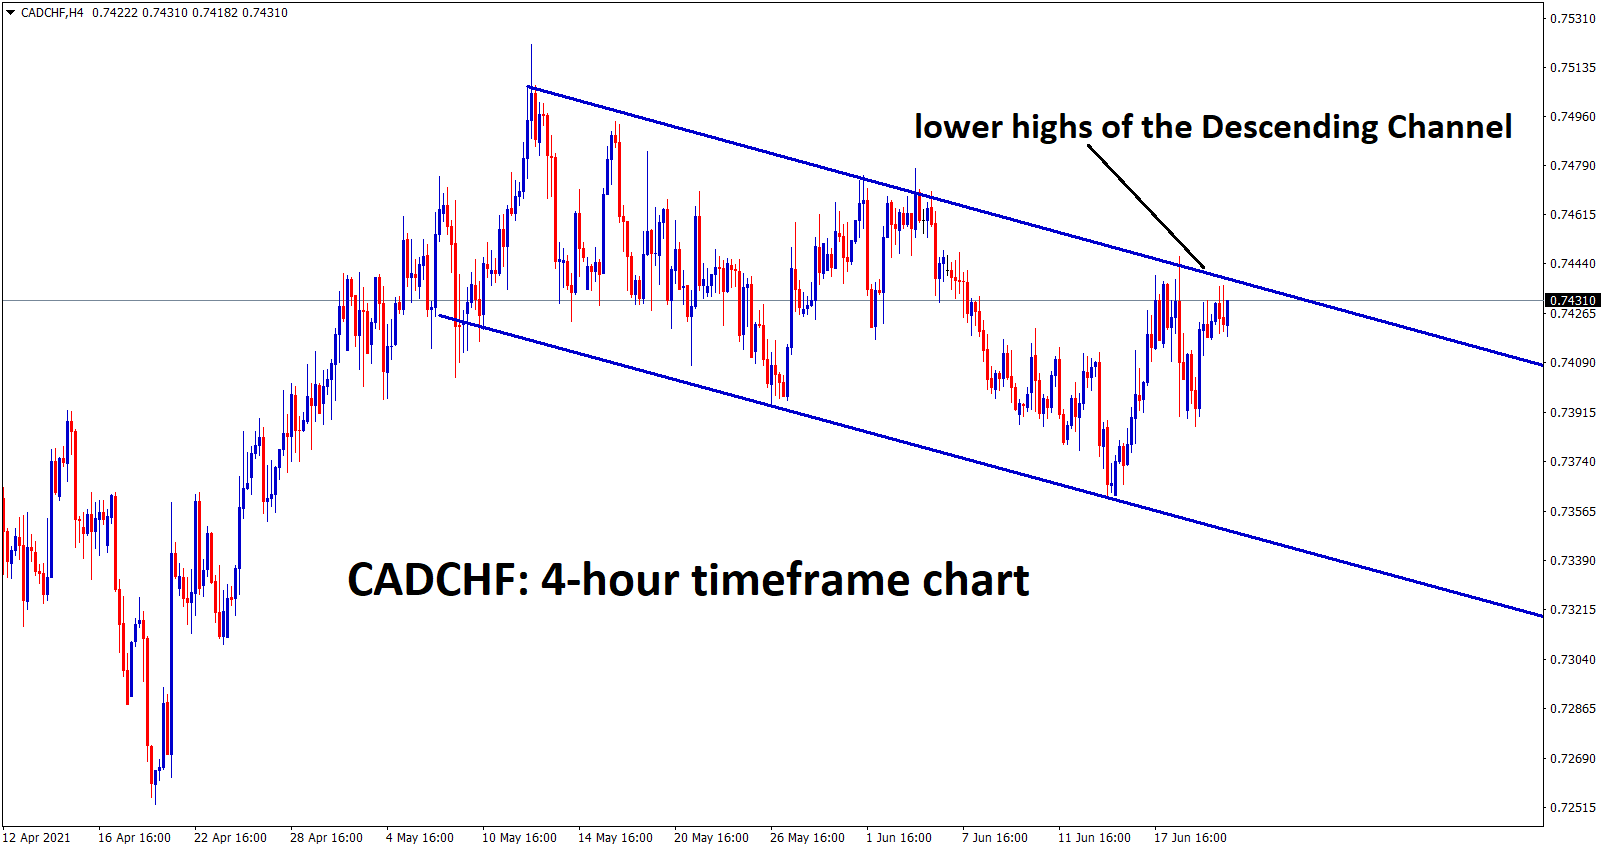 CADCHF is moving in a descending channel